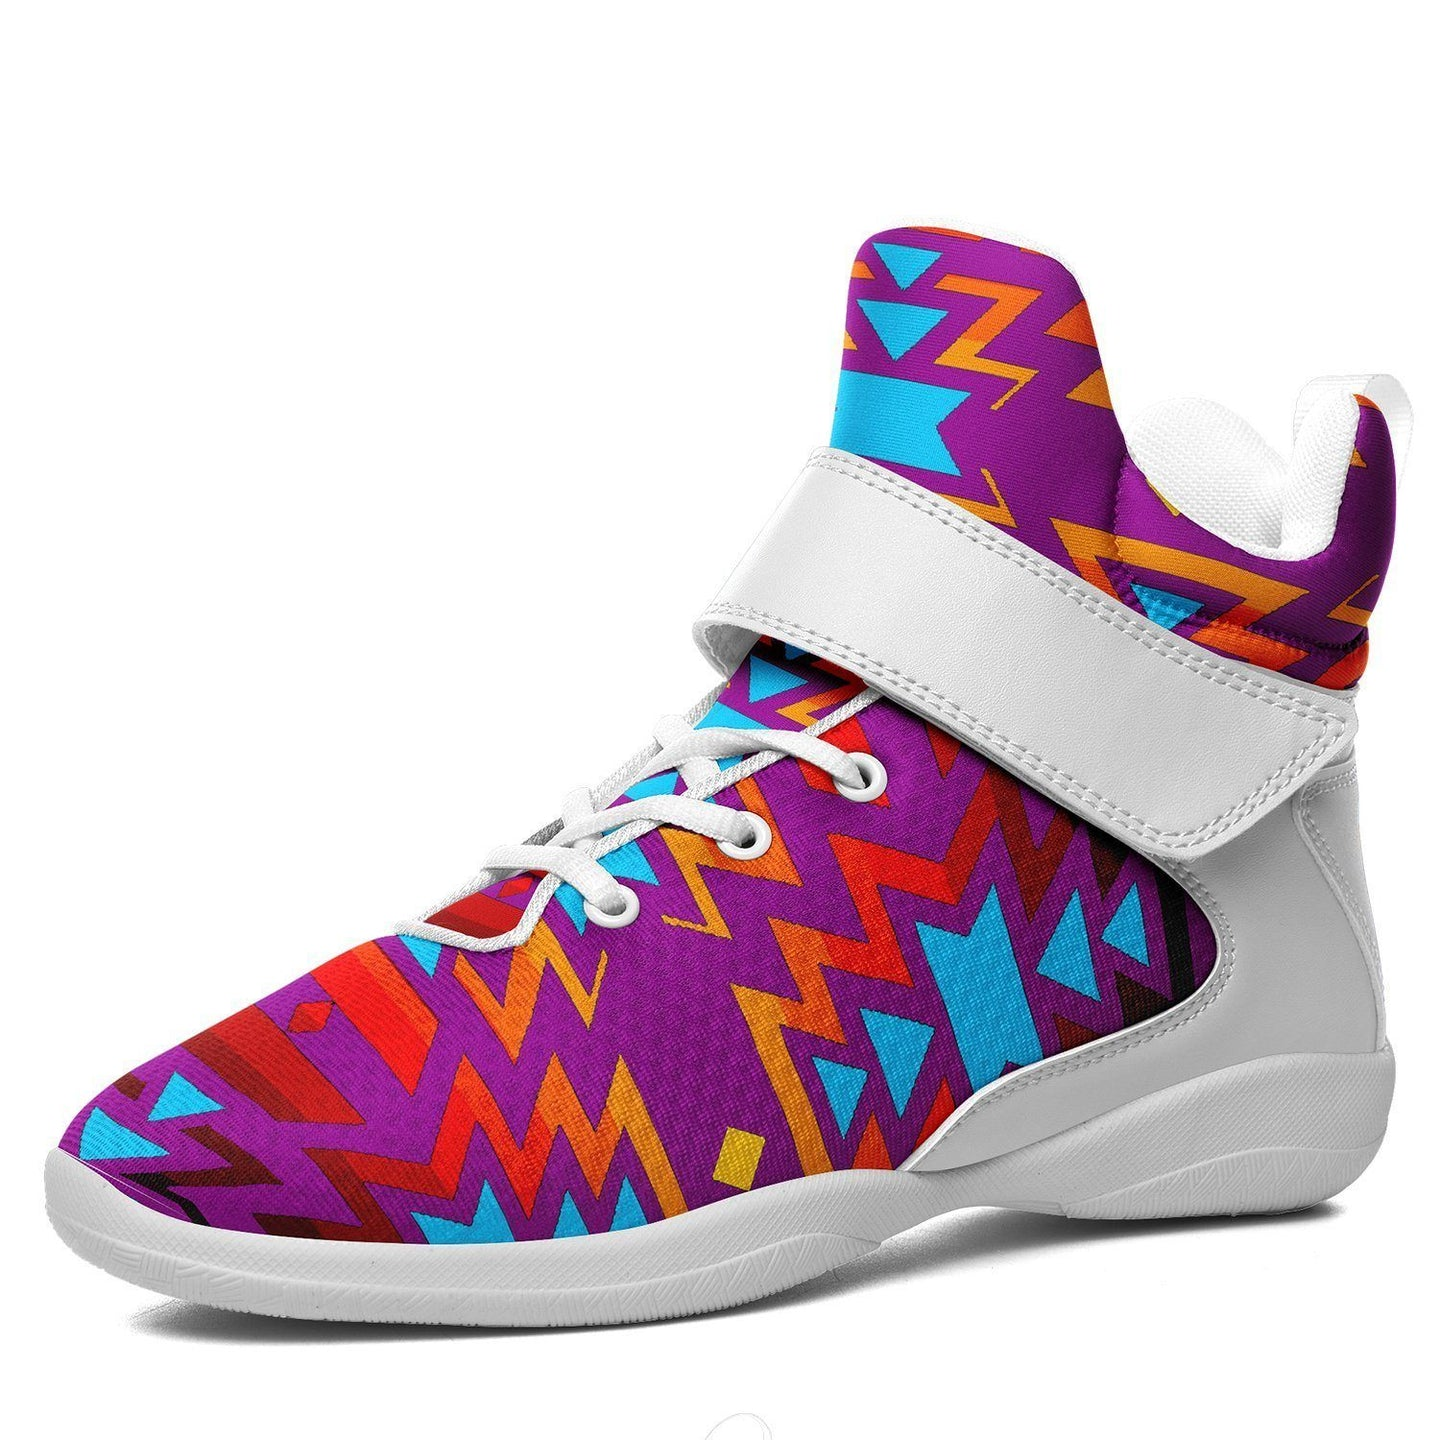 Fire Colors and Turquoise Purple Kid's Ipottaa Basketball / Sport High Top Shoes 49 Dzine US Child 12.5 / EUR 30 White Sole with White Strap